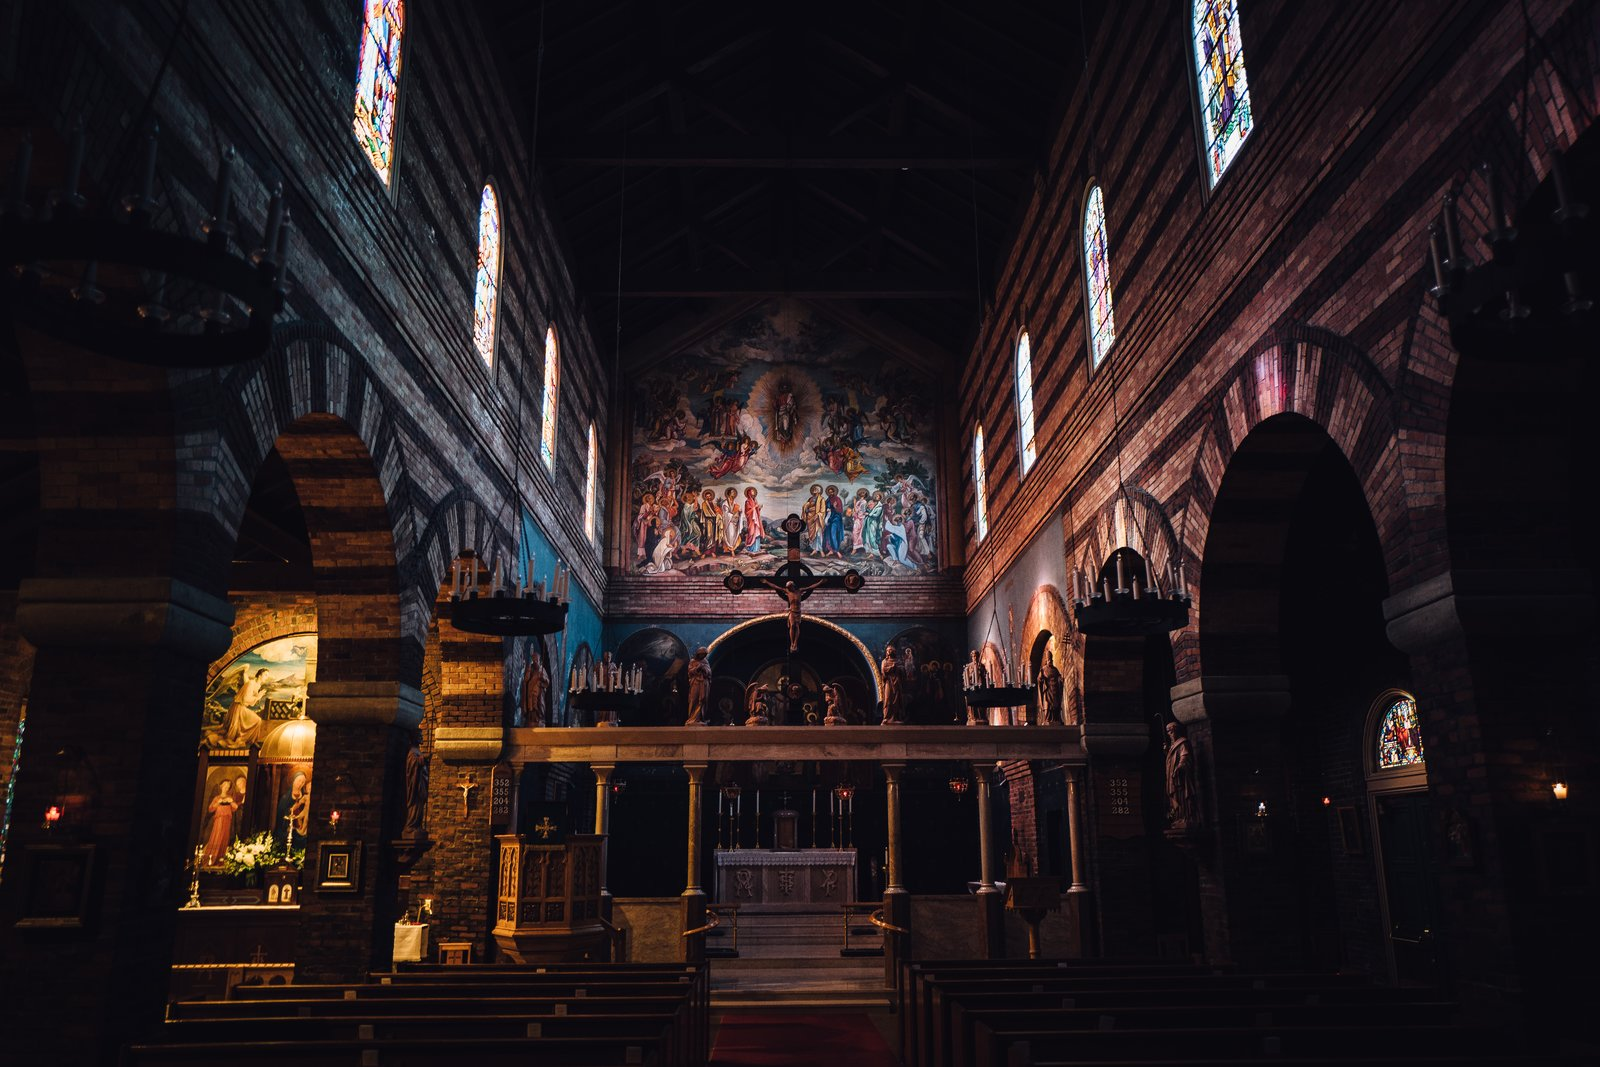 The marvelous interior of The Anglican Parish of Saint Mark in NW Portland.  Photo 7 of 10 in The Opinionated Leica Q